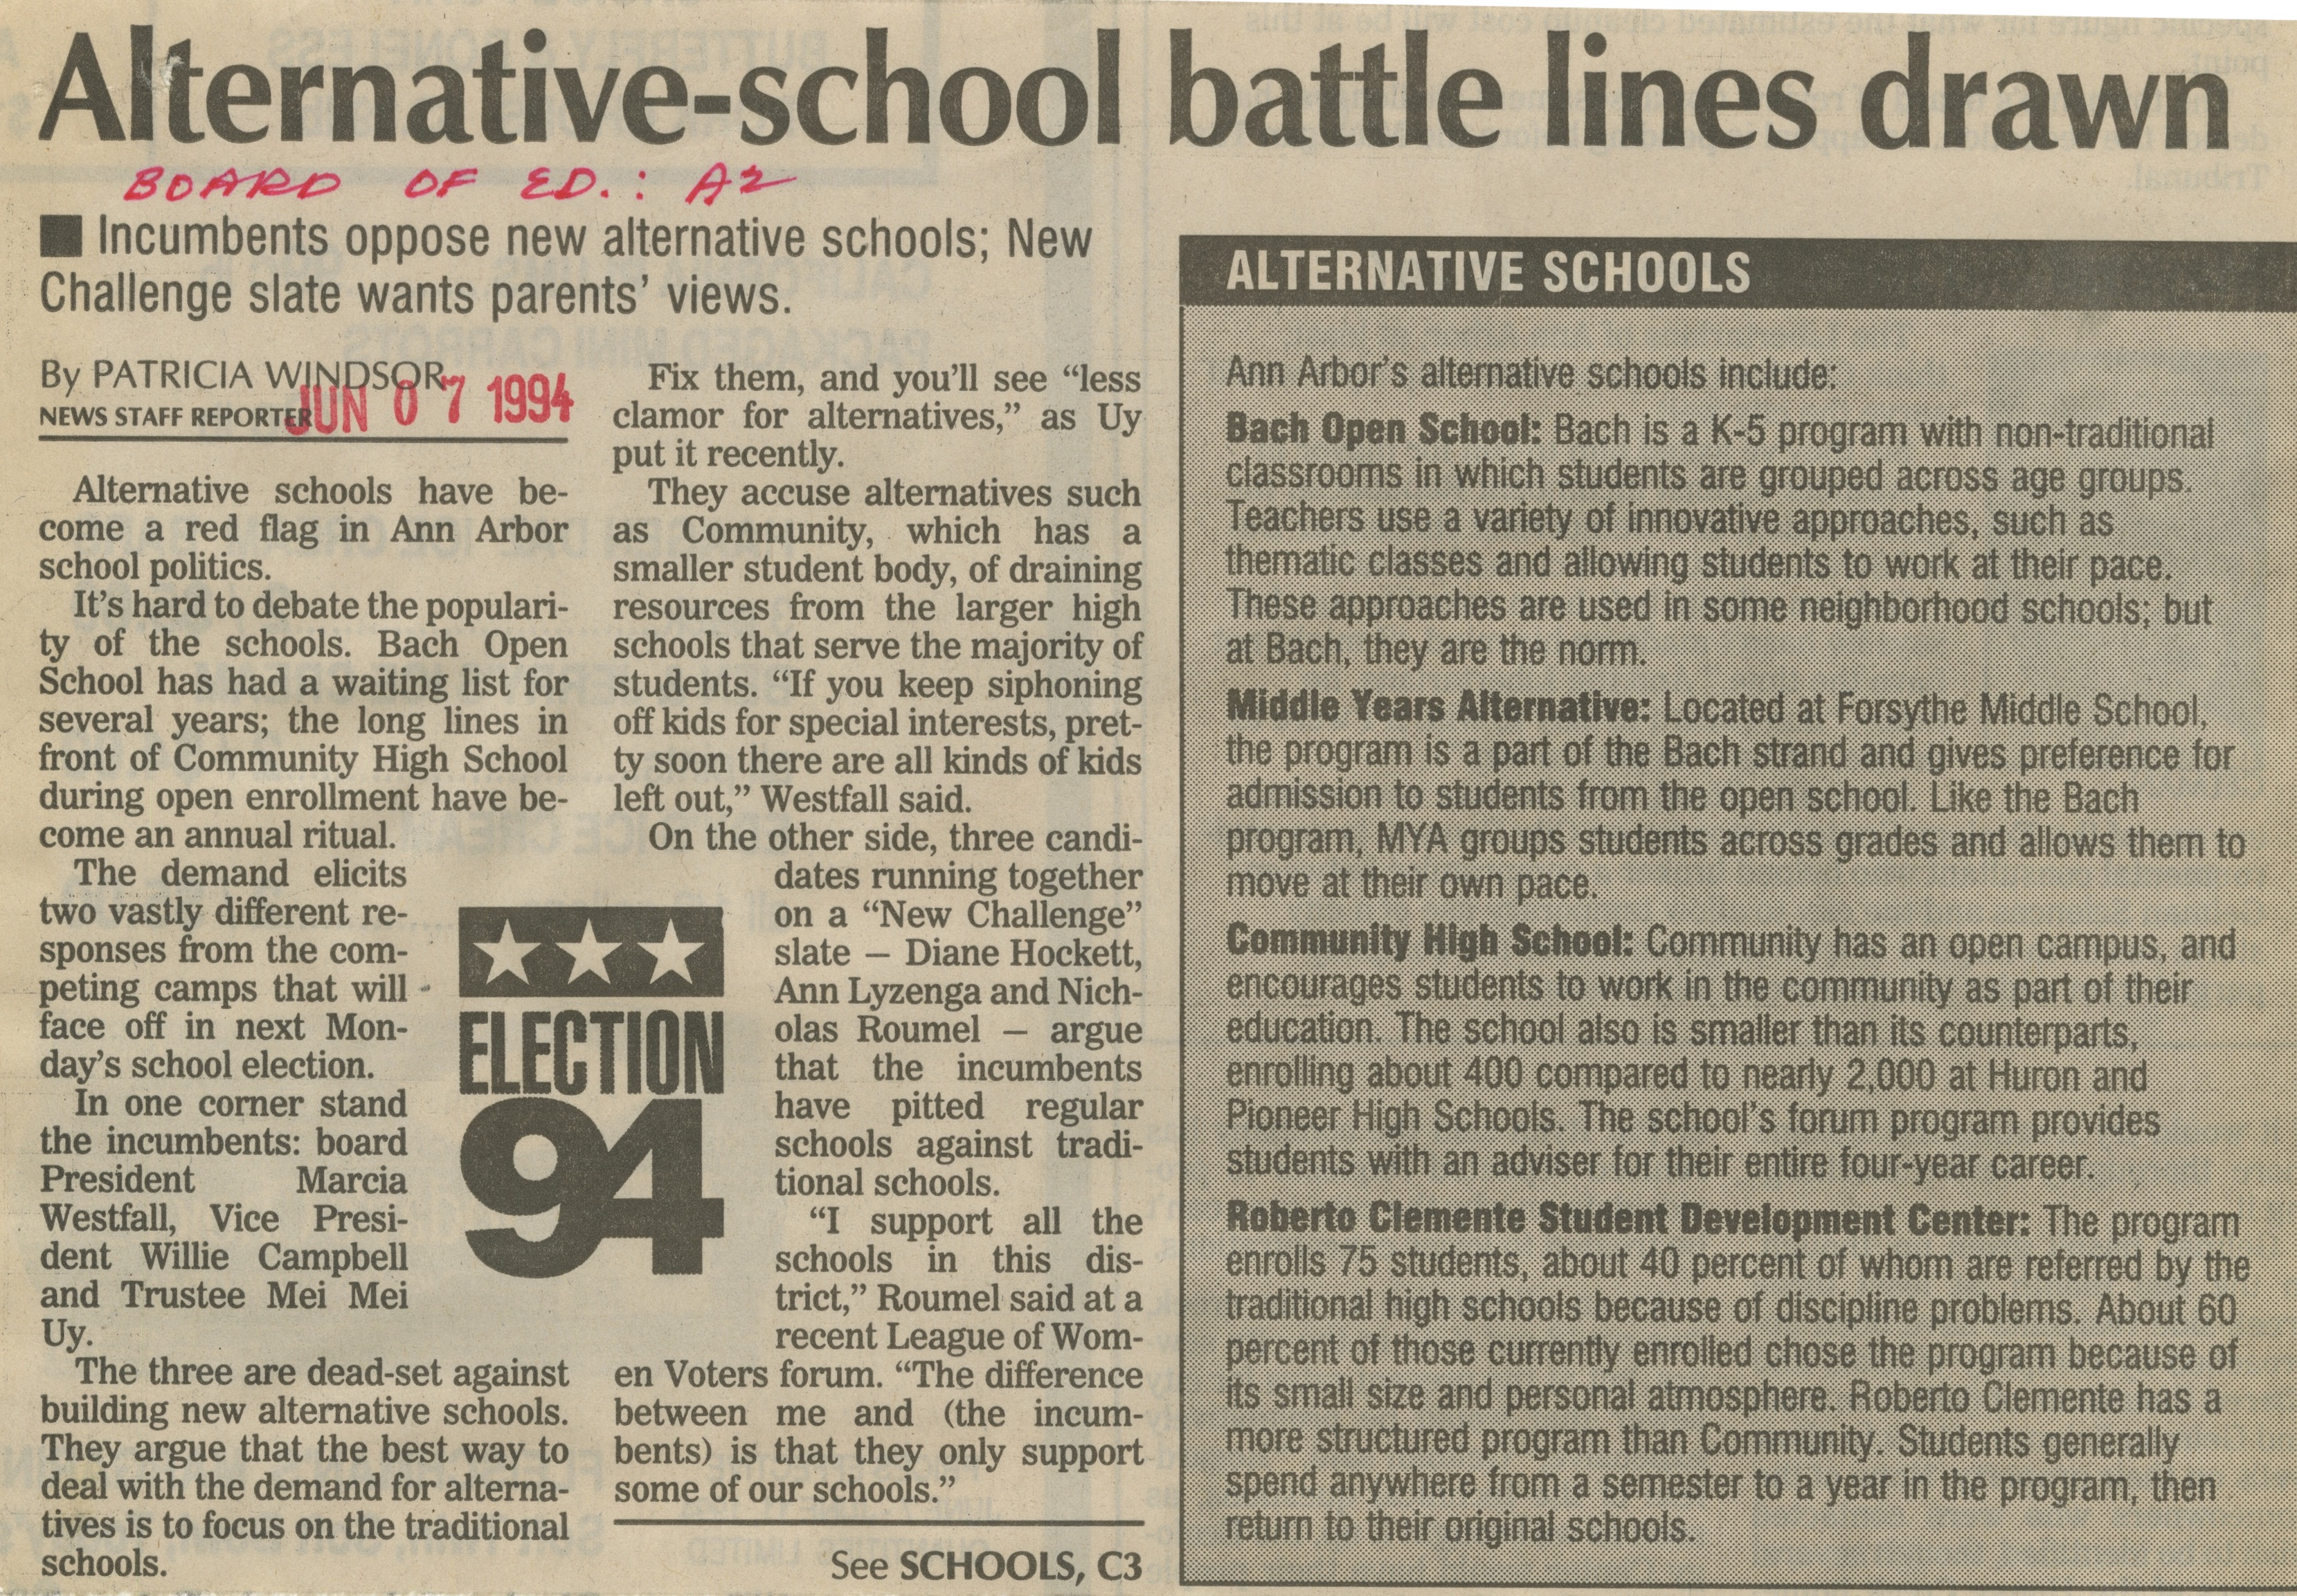 Alternative-school battle lines drawn image